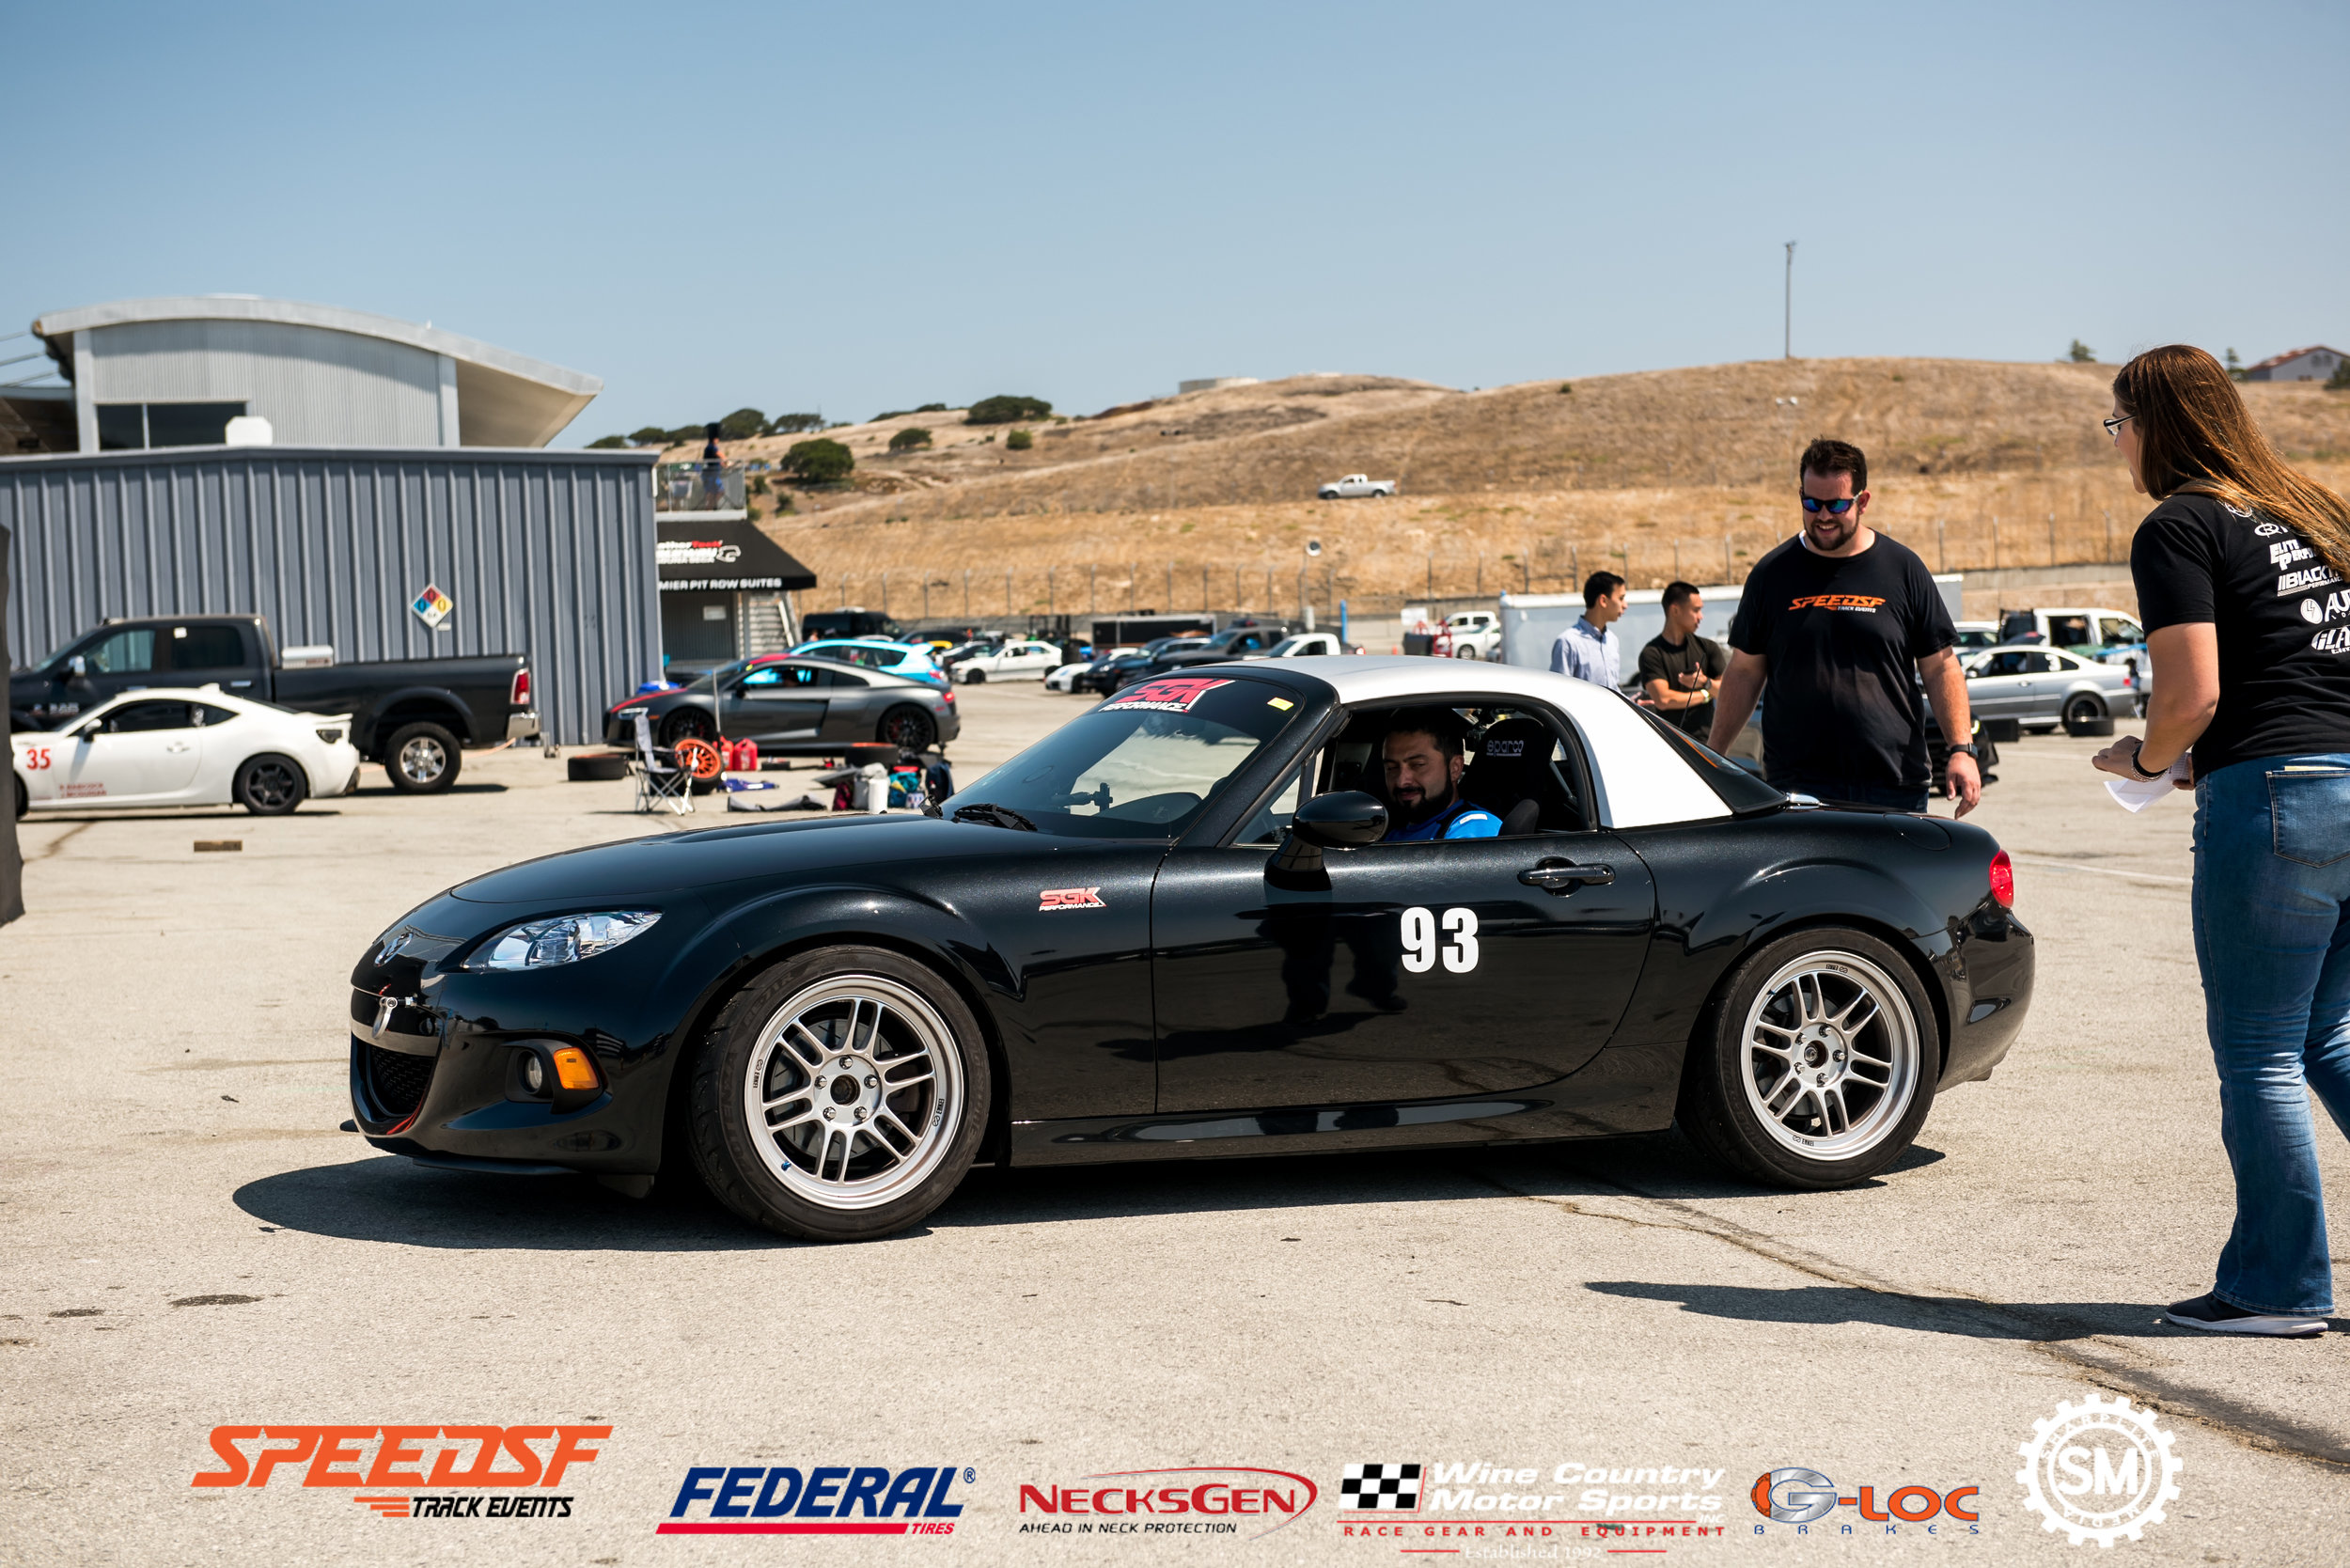 SpeedSF Paddock Sunday-51.jpg